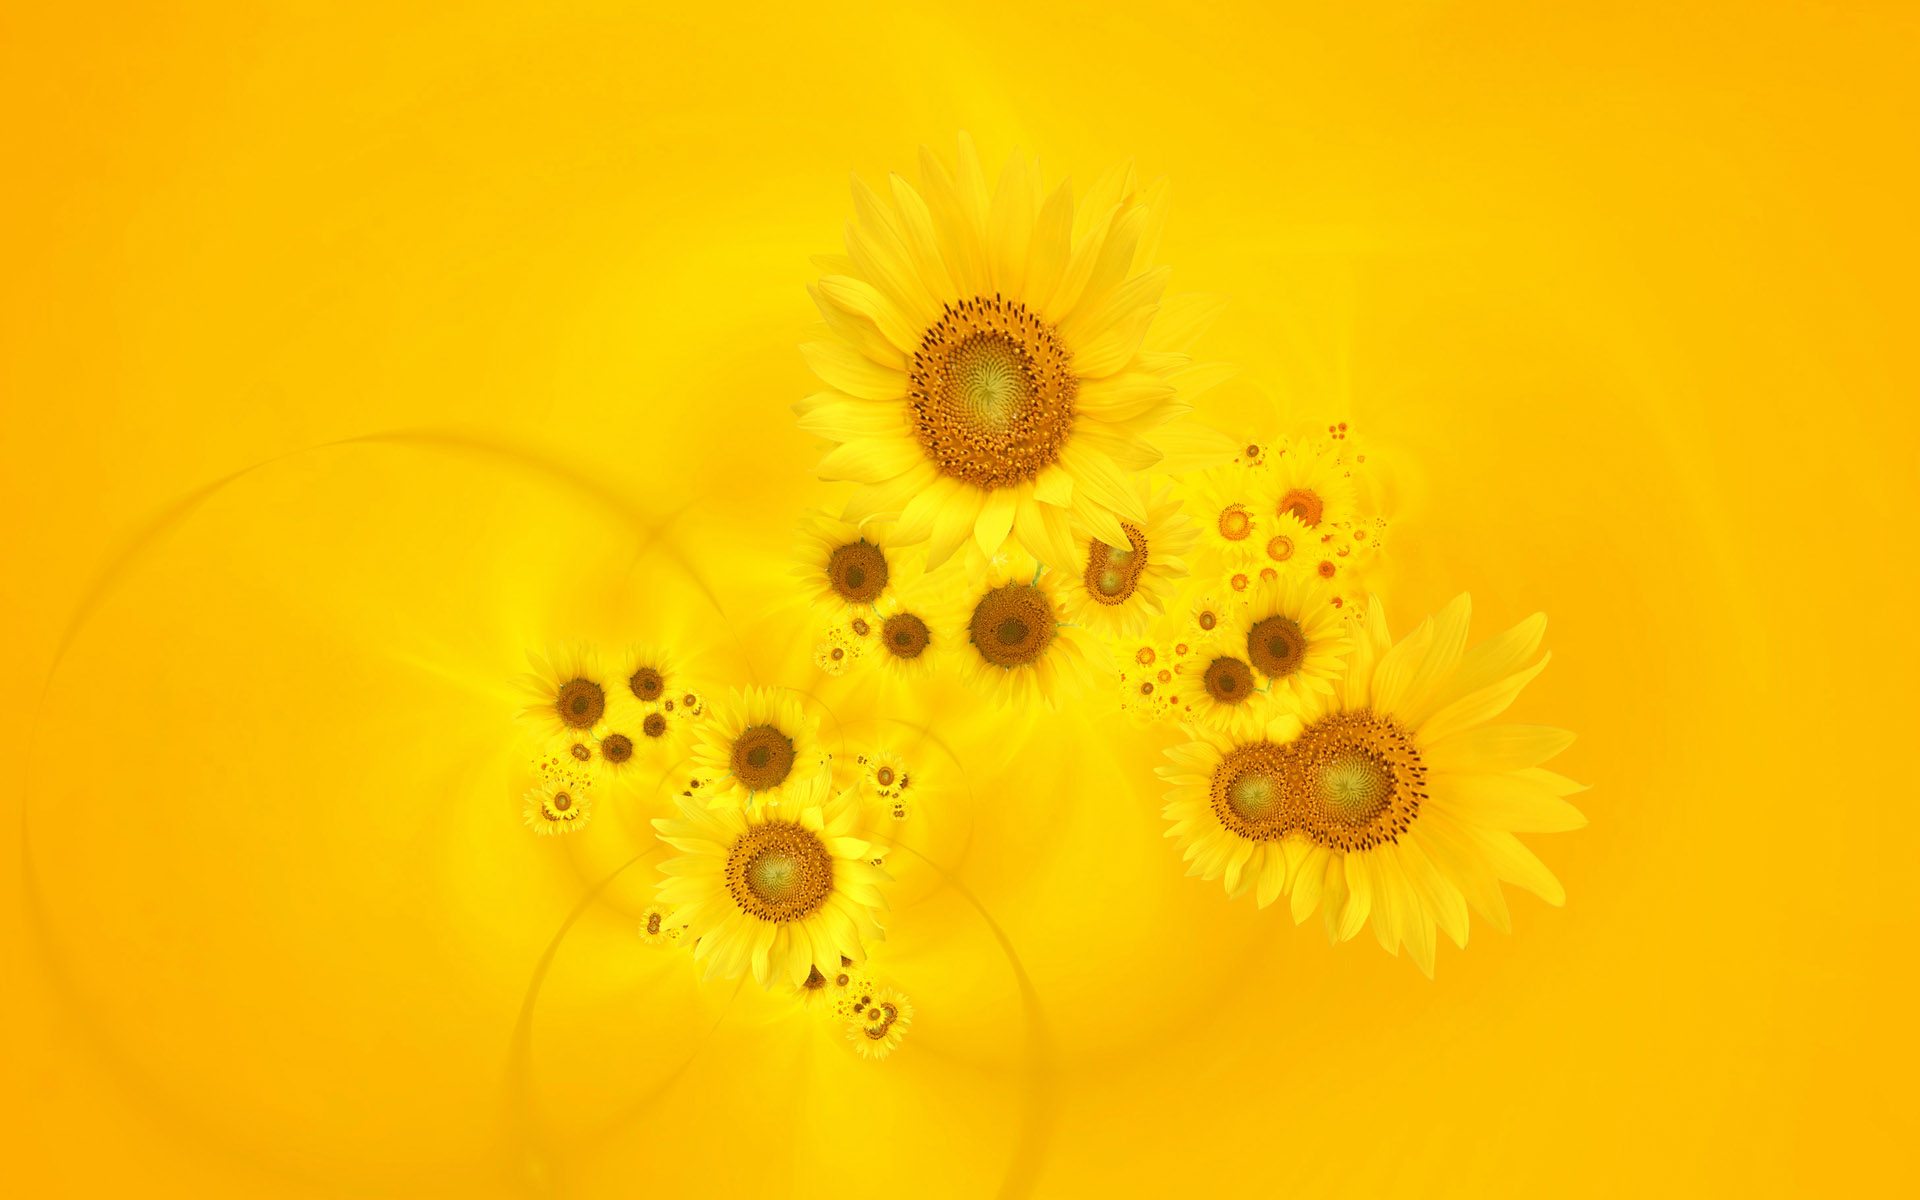 Bright Yellow Sunflowers Wallpapers HD Wallpapers 1920x1200